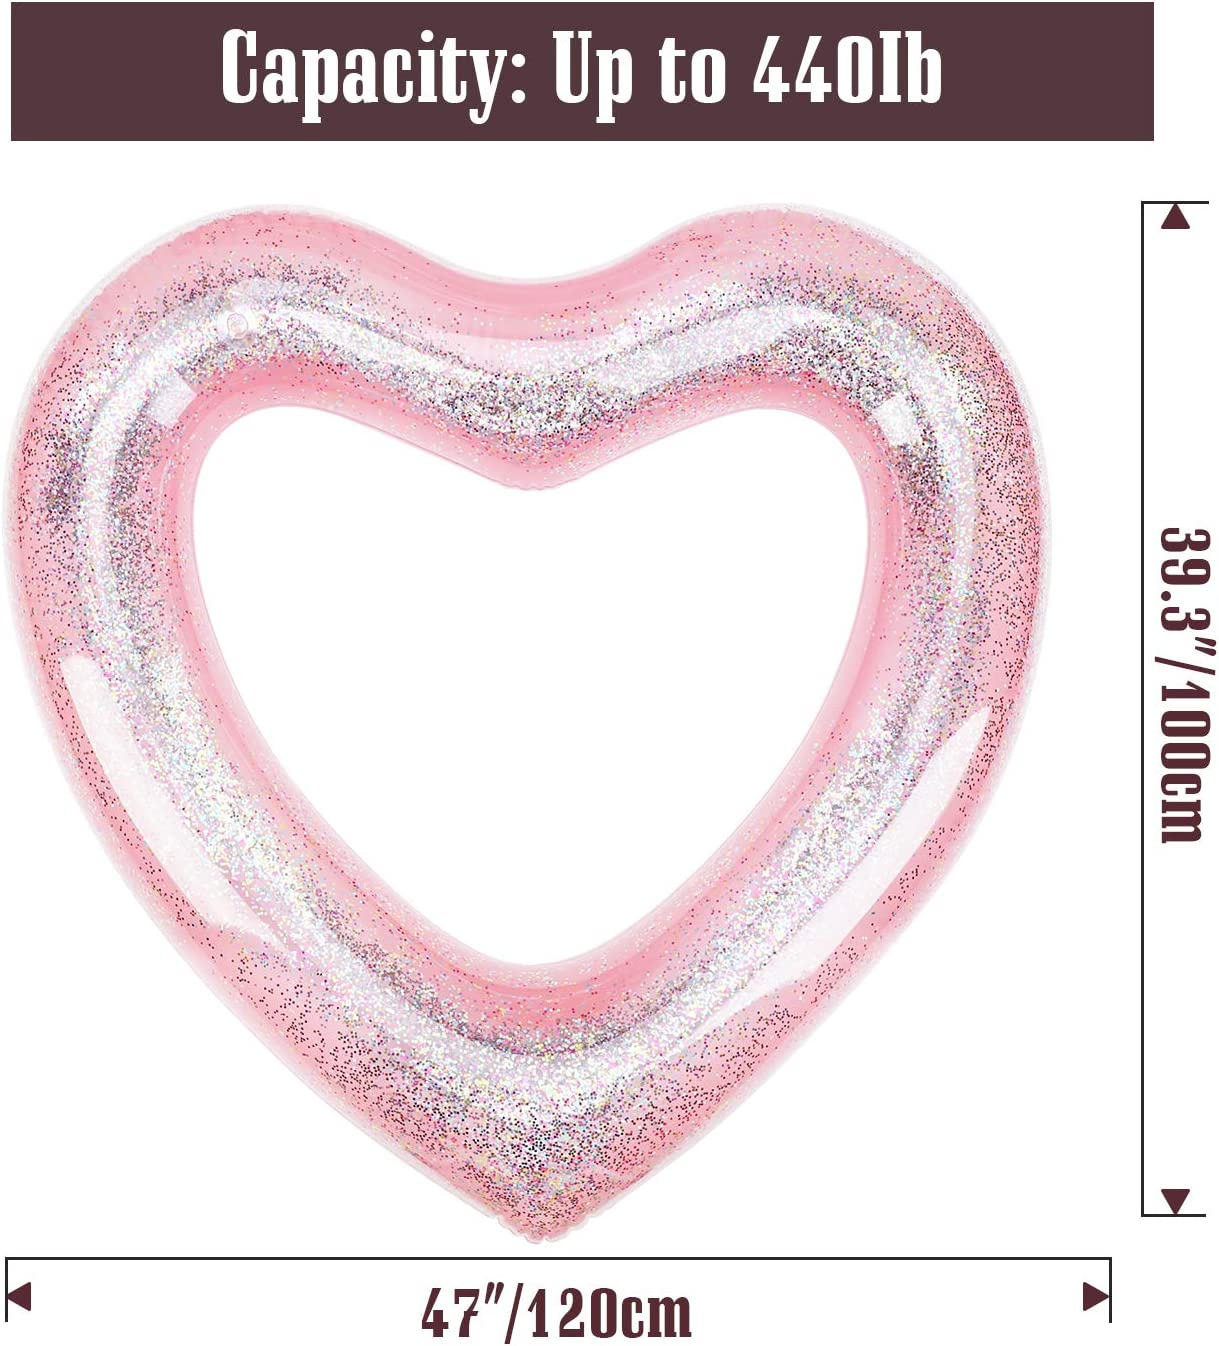 Rose Gold Water Fun Beach Party Toys for Kids Adults Heart Shaped Summer Swimming Pool Float Loungers Tube 120 cm Diameter HeySplash Inflatable Swim Rings with Glitter